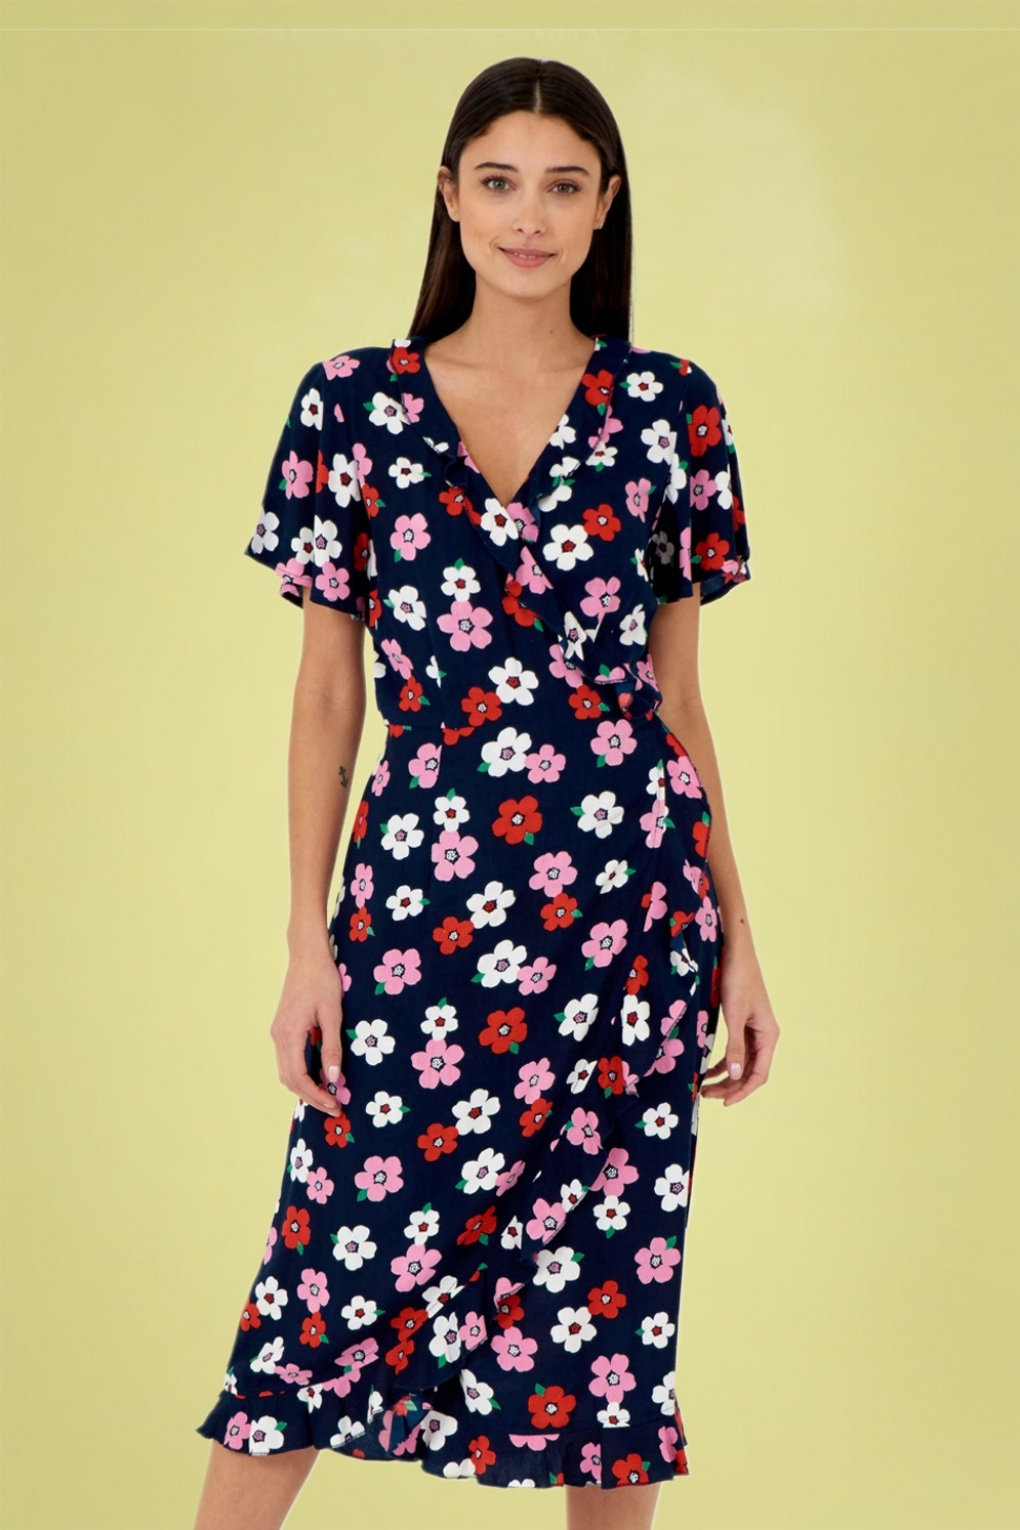 500 Vintage Style Dresses for Sale | Vintage Inspired Dresses 70s Jenny Pretty Floral Dress in Navy £65.76 AT vintagedancer.com